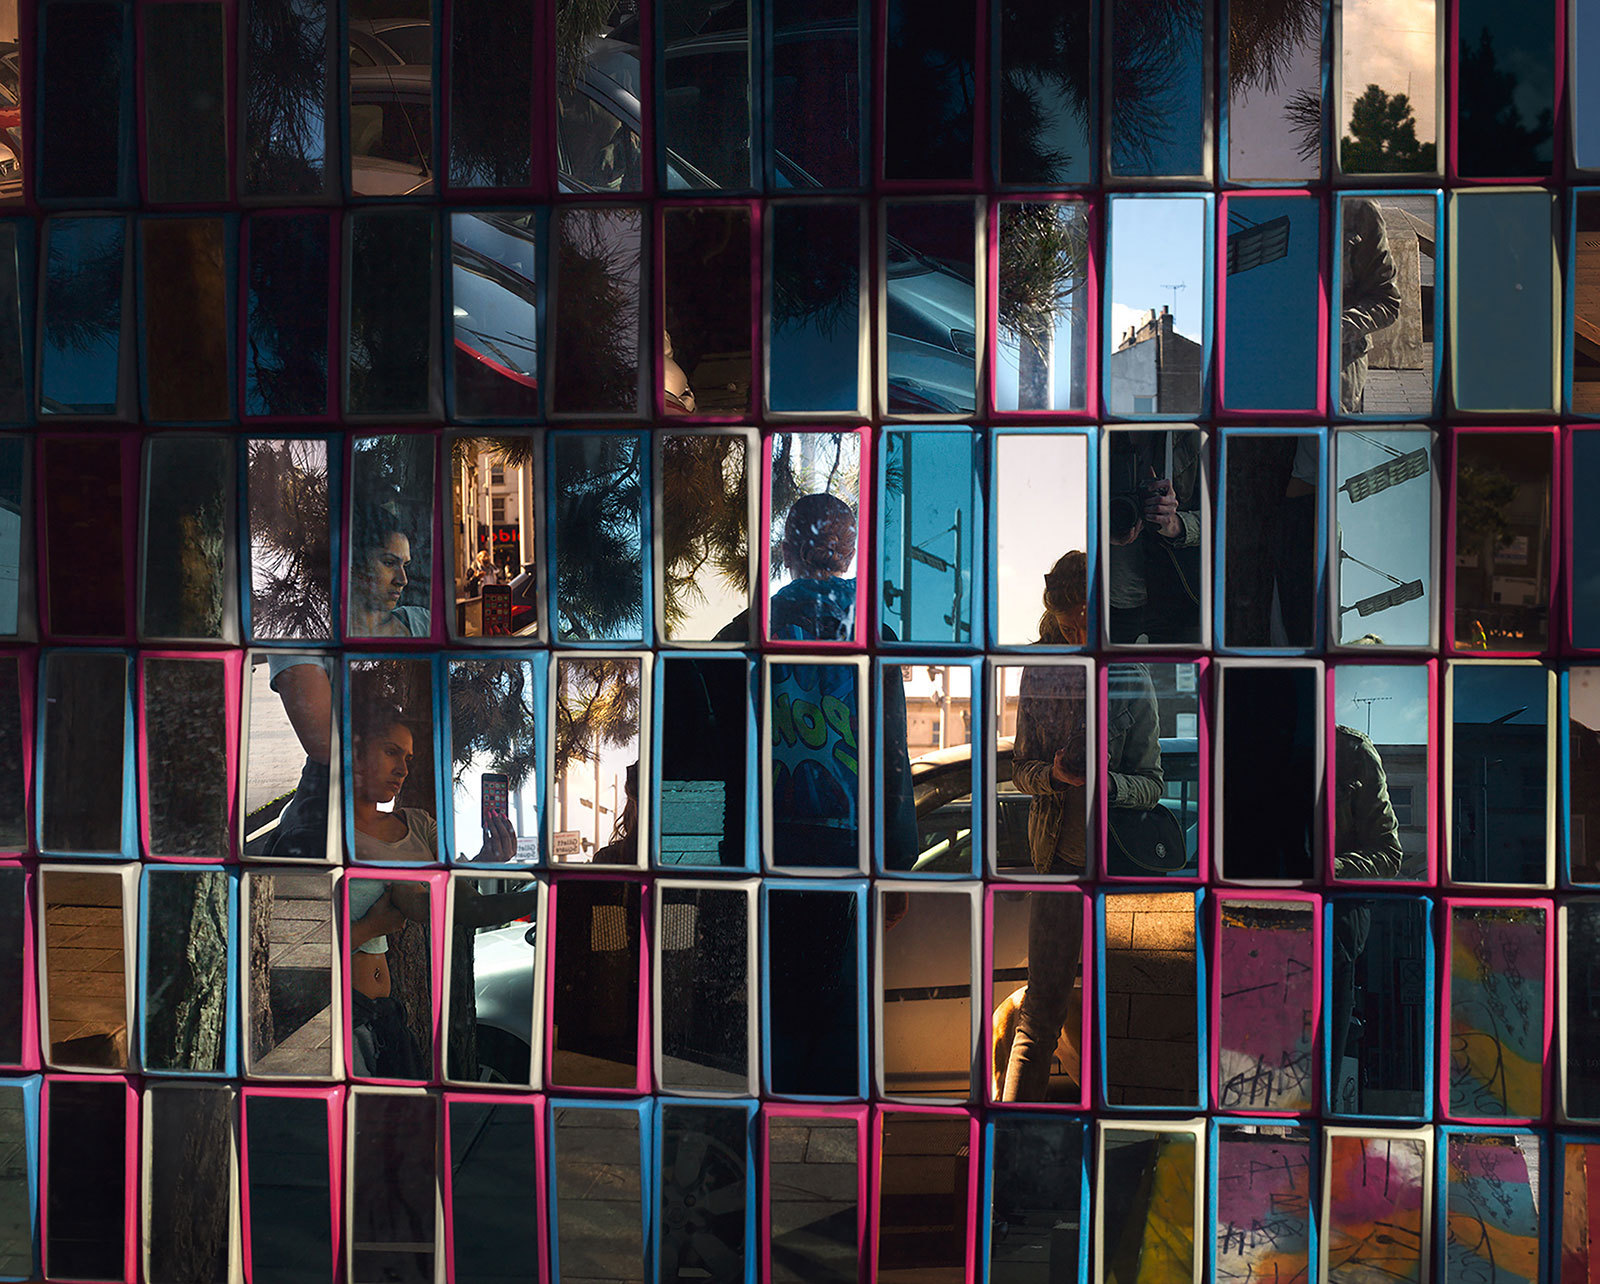 Hannah Starkey Mirror – Untitled 2015 Framed c-type print mounted on aluminum Represented by Maureen Paley